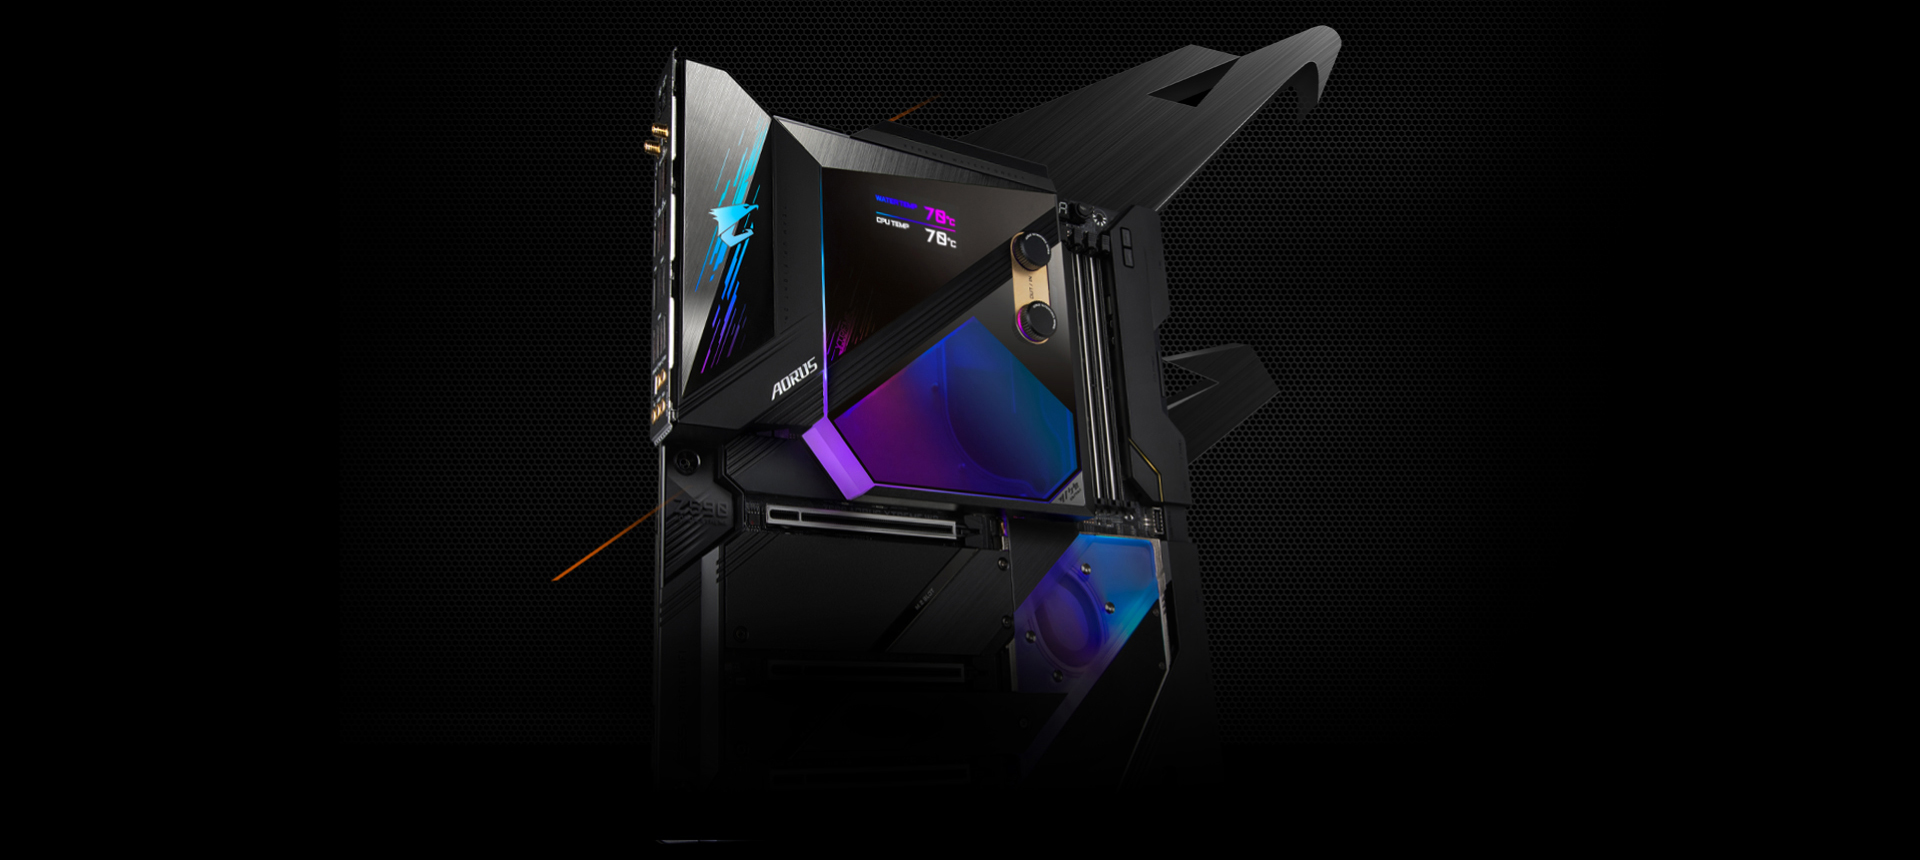 Gigabyte Z590 AORUS Xtreme Waterforce Lands At Newegg For A Whopping $1600, Features LED Readouts On The Stunning Monoblock